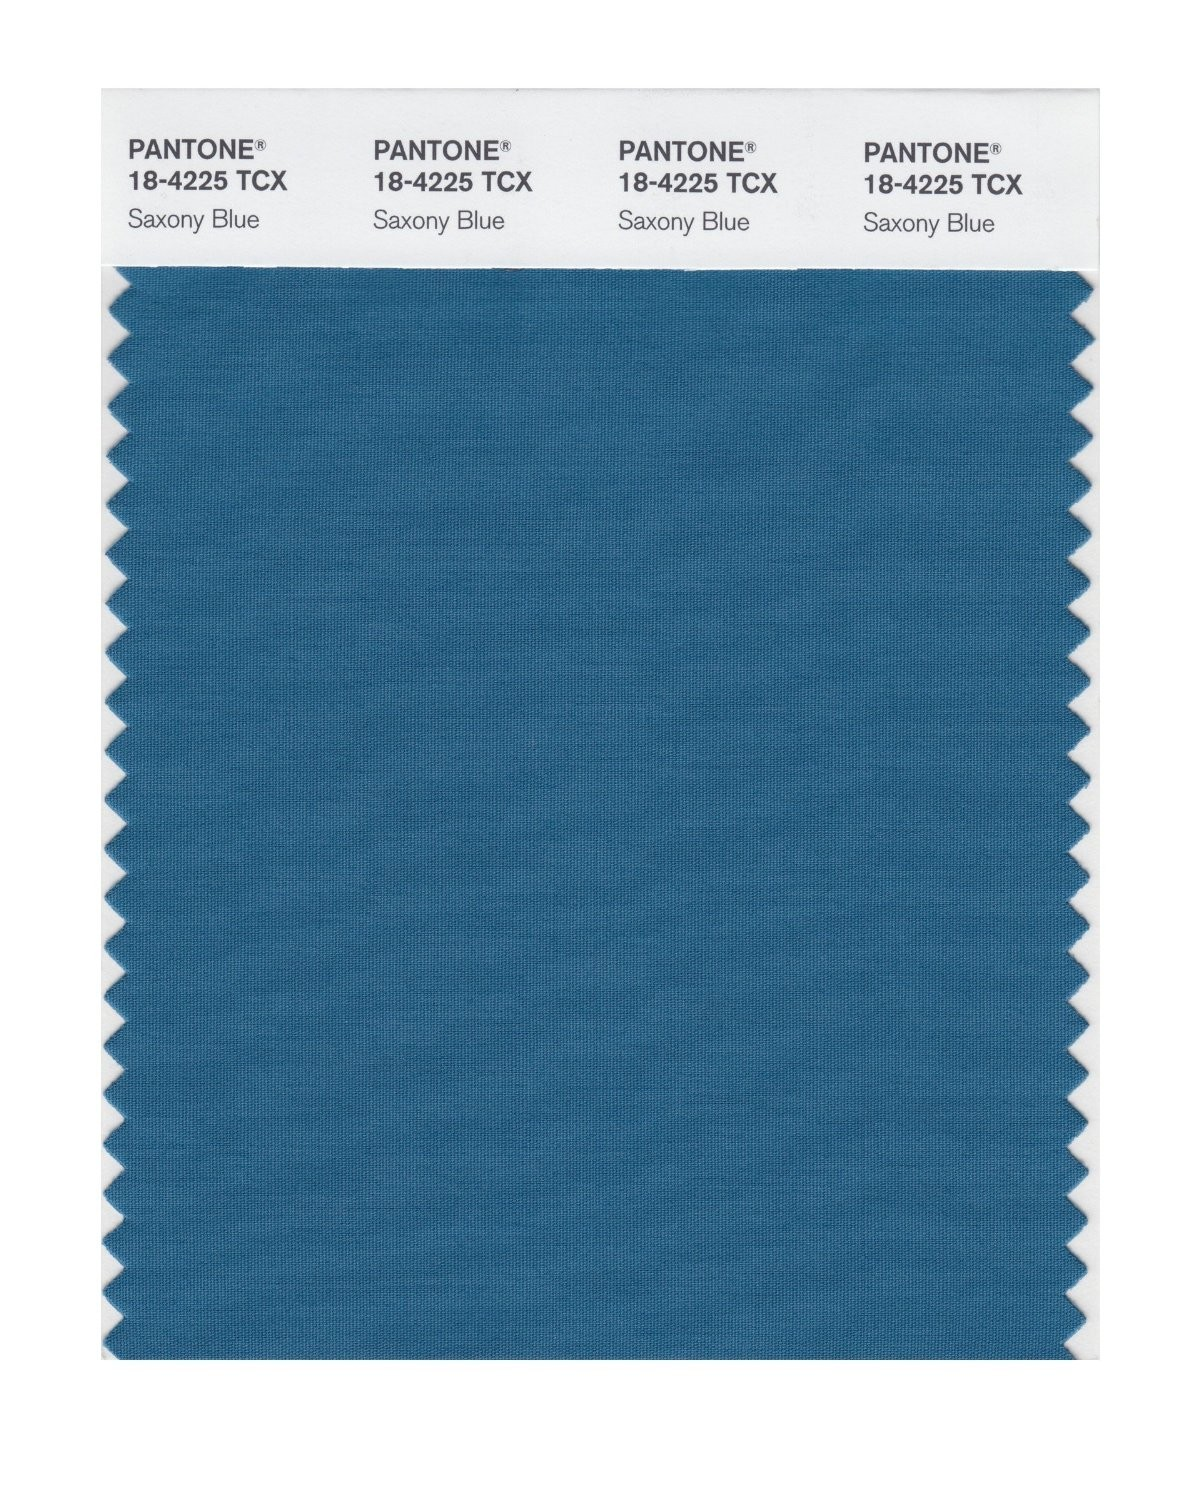 Pantone 18-4225 TCX Swatch Card Saxony Blue